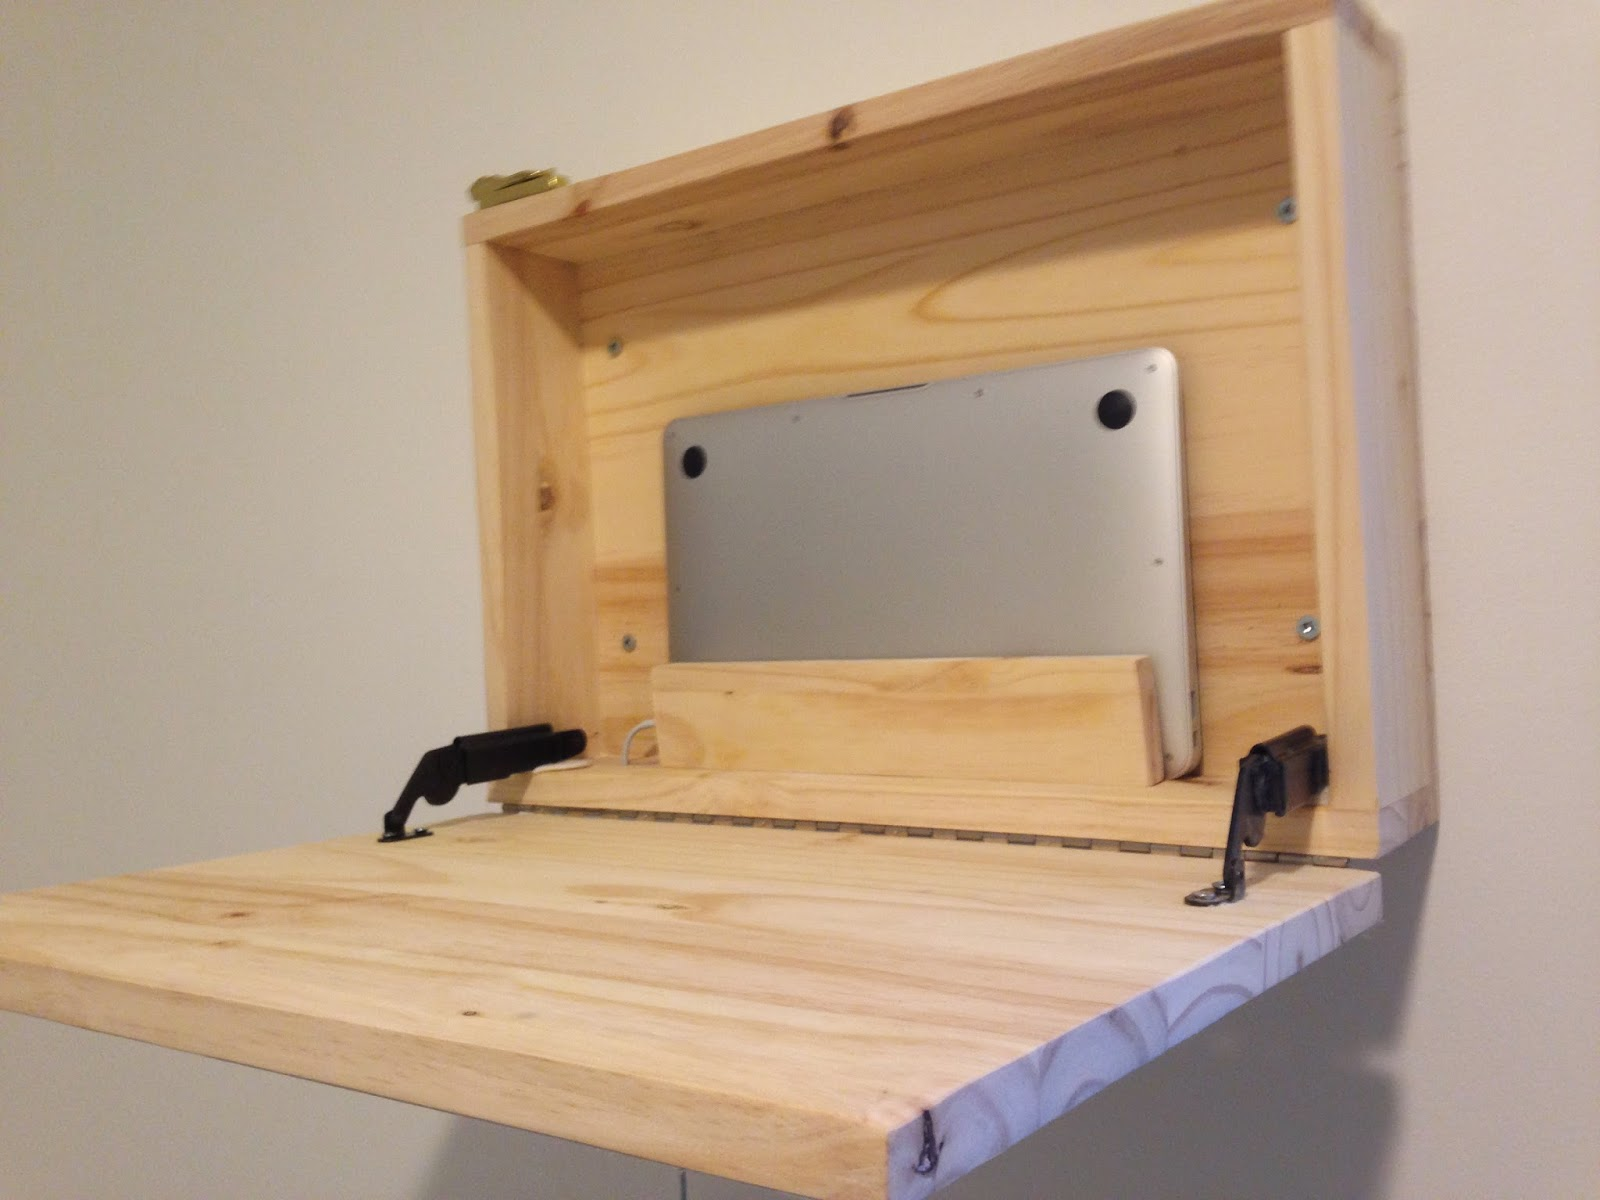 Bigge Idea: A cheap and attractive DIY standing desk option